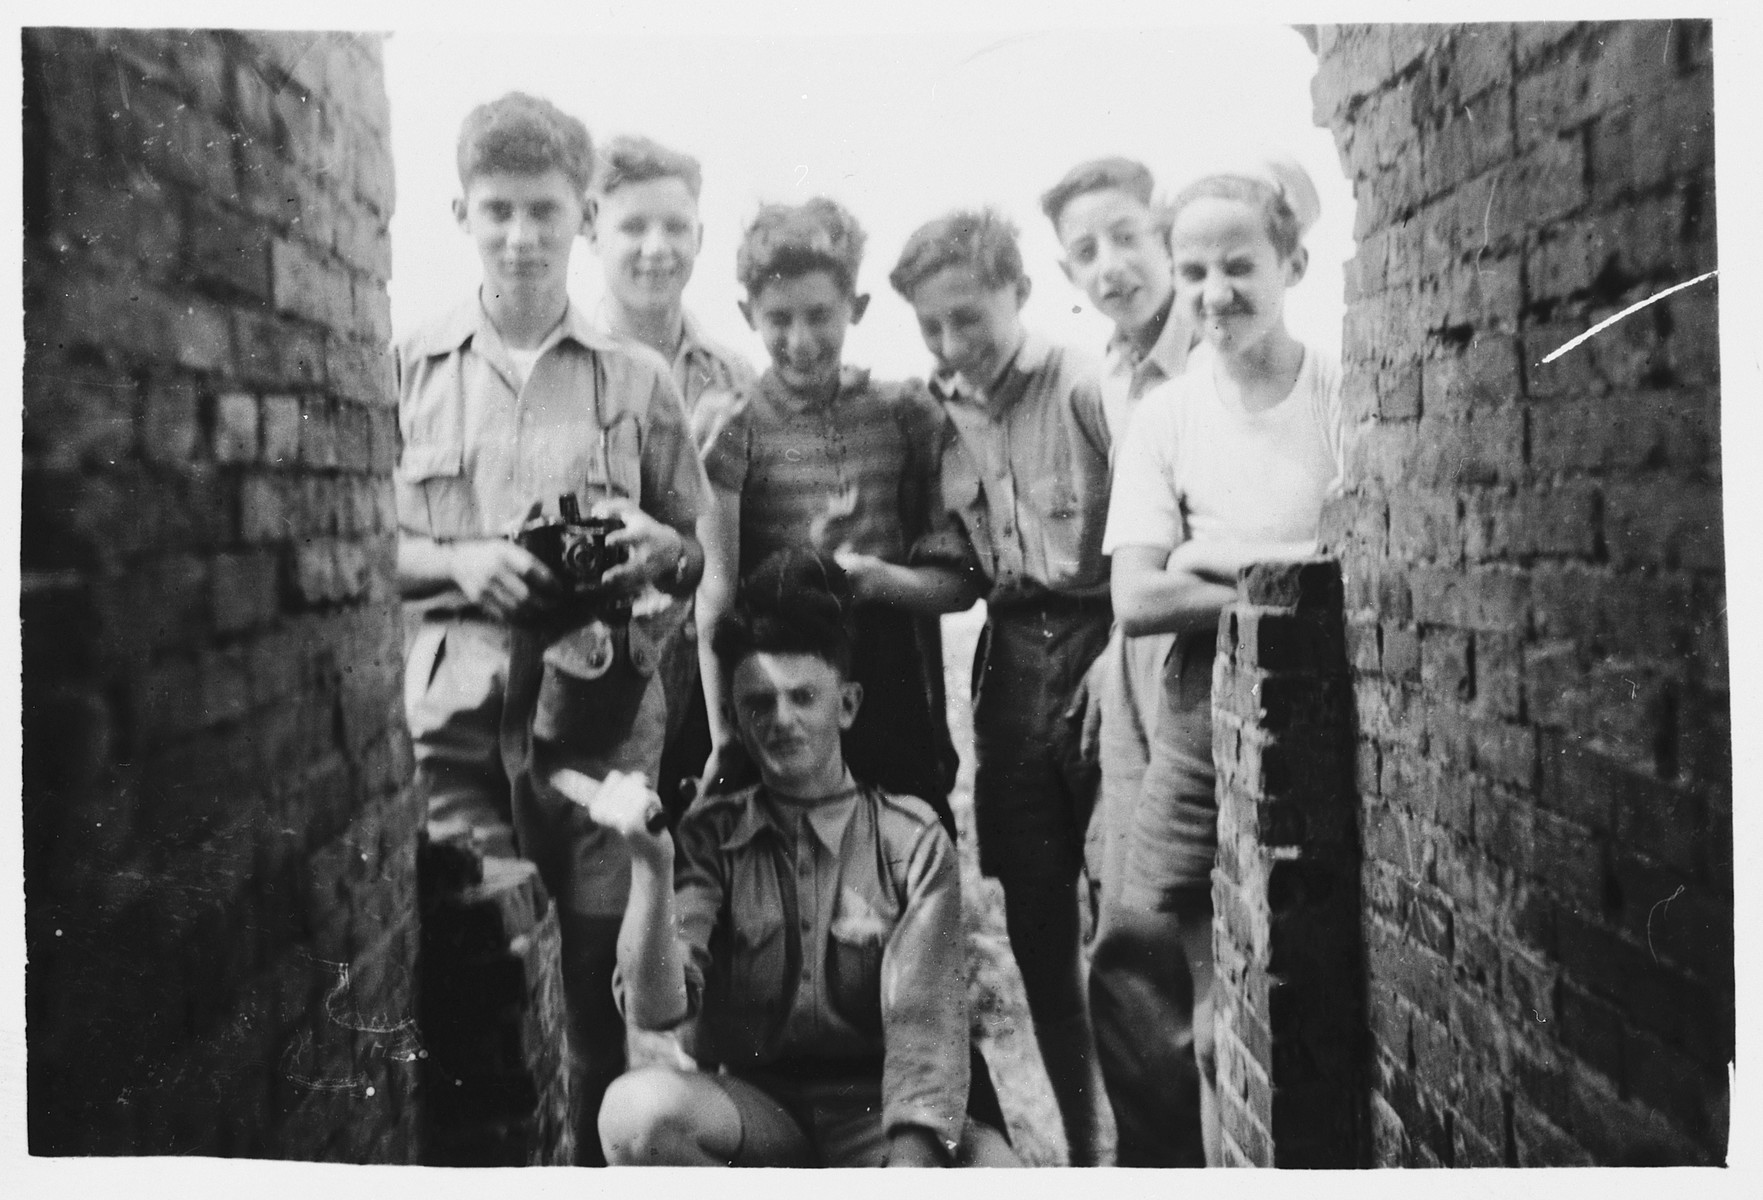 Jewish boys from the Zionist group Brit Trumpeldor pose during an excursion.